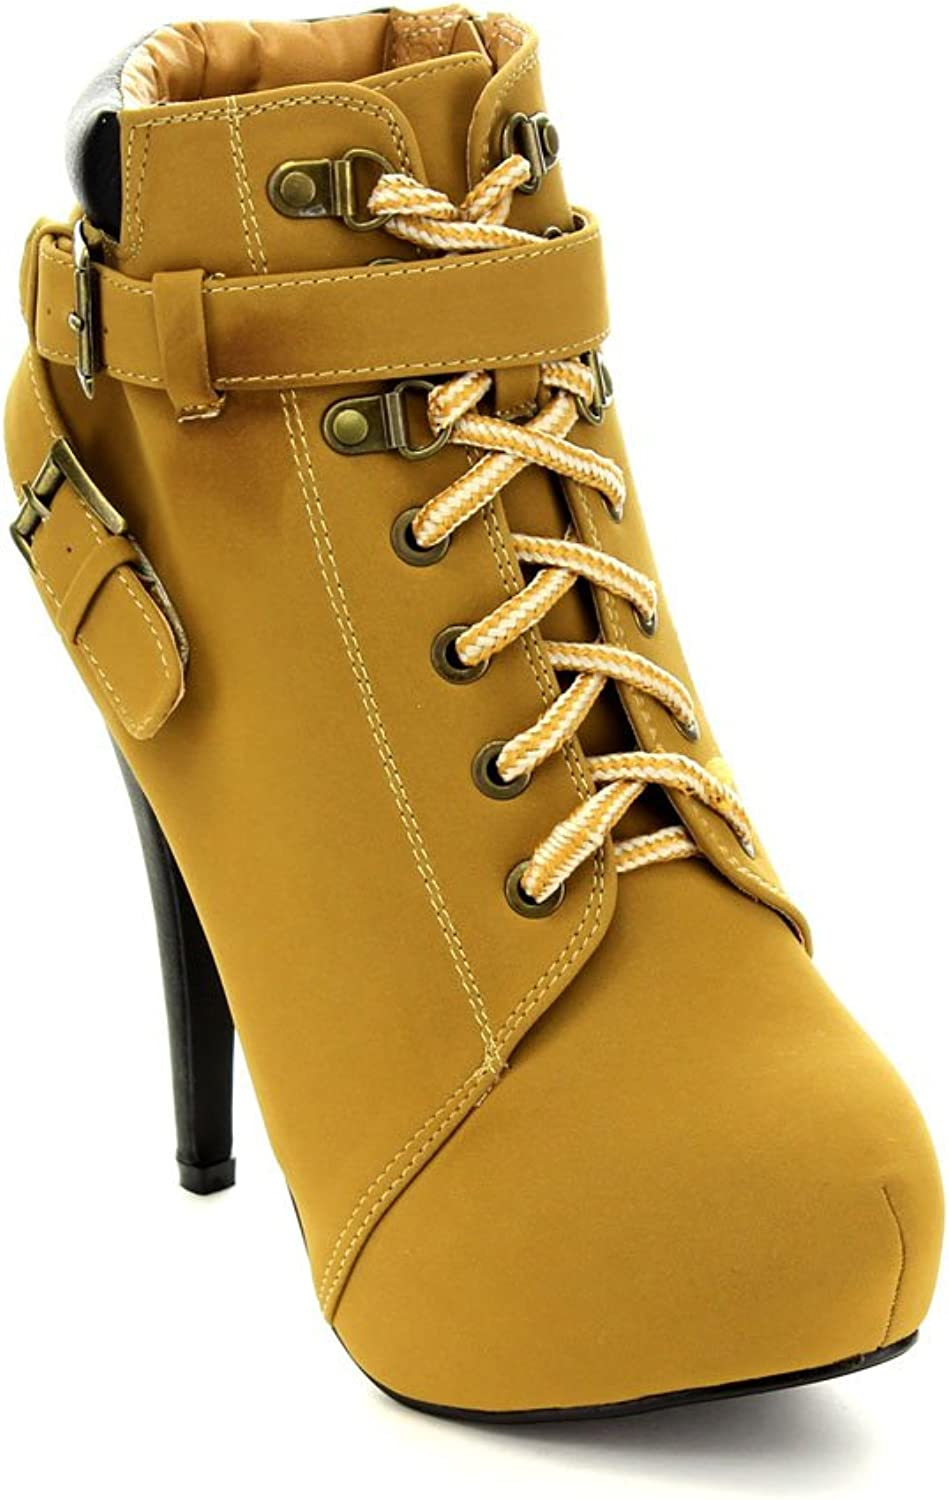 Forever Compose-08 Women's Fashion Stiletto Heel Lace Up Ankle Booties